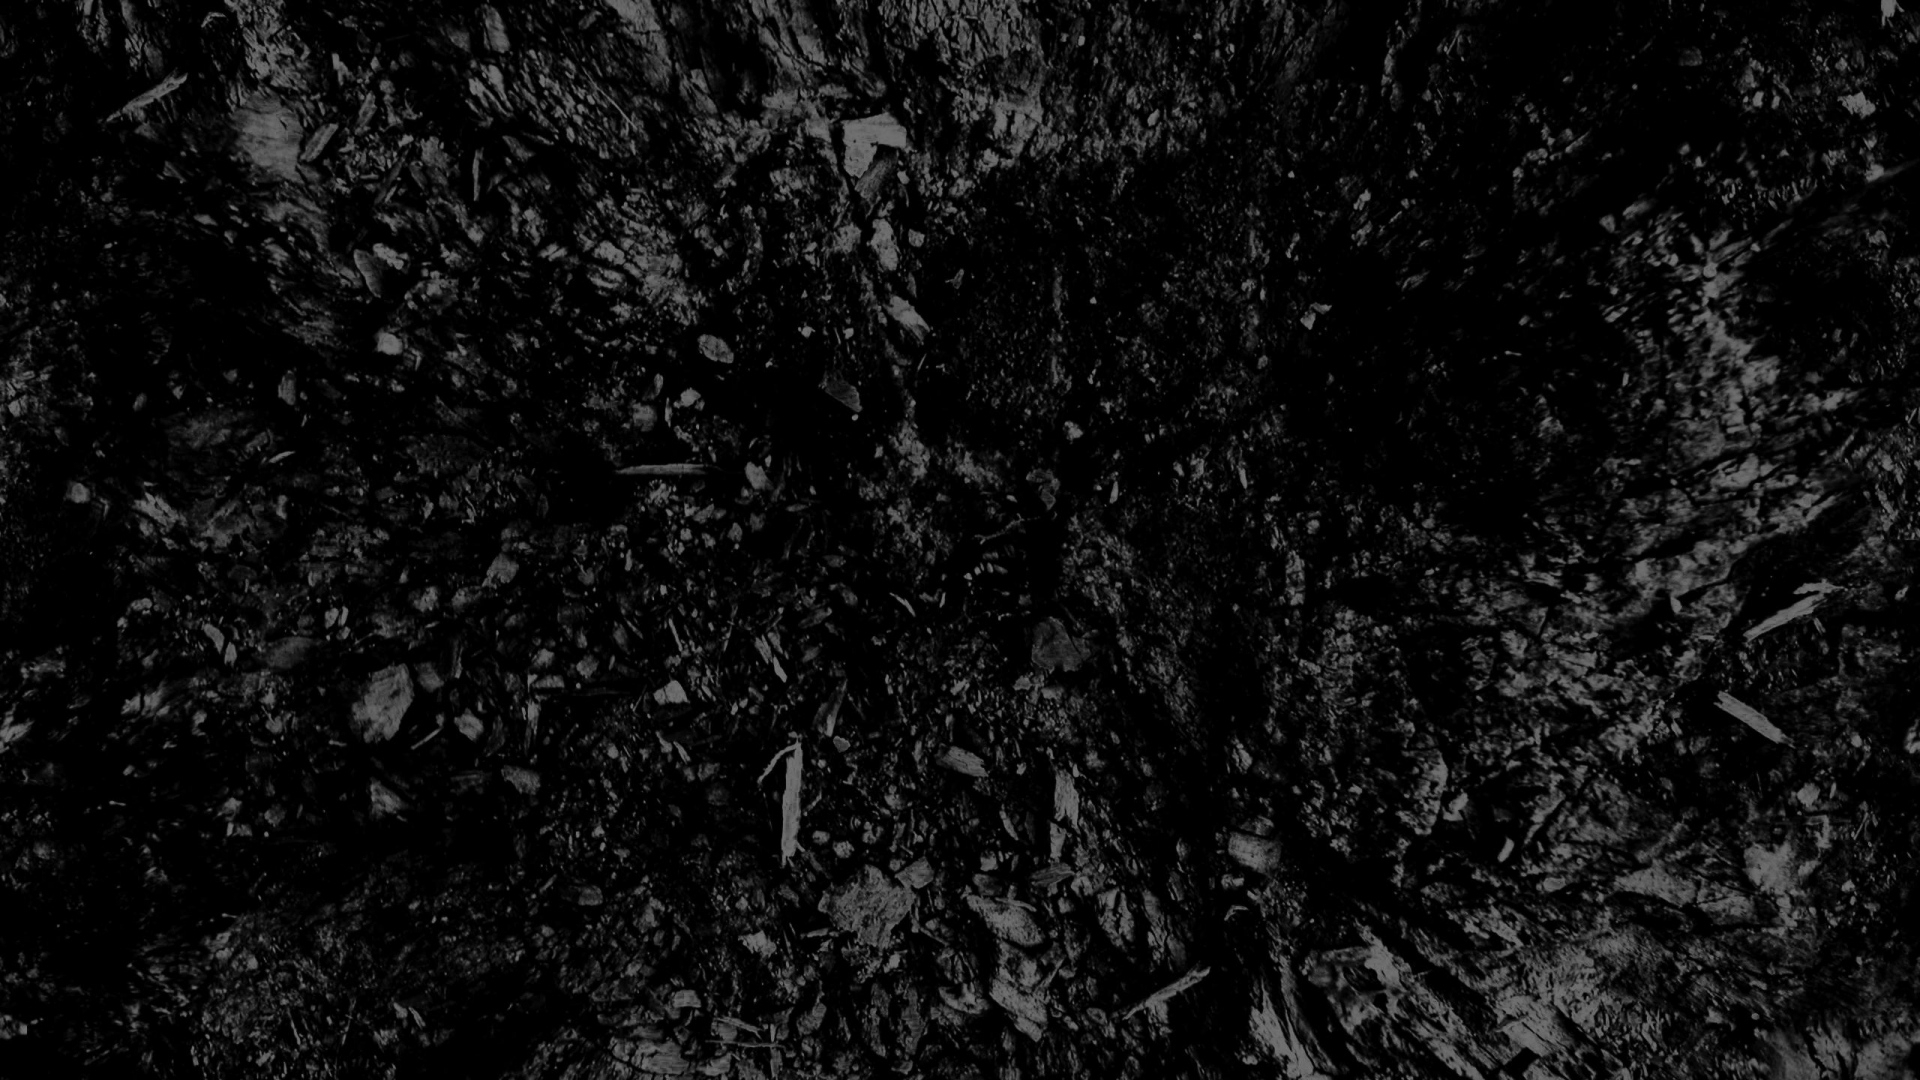 download wallpaper 1920x1080 dark, black and white, abstract, black